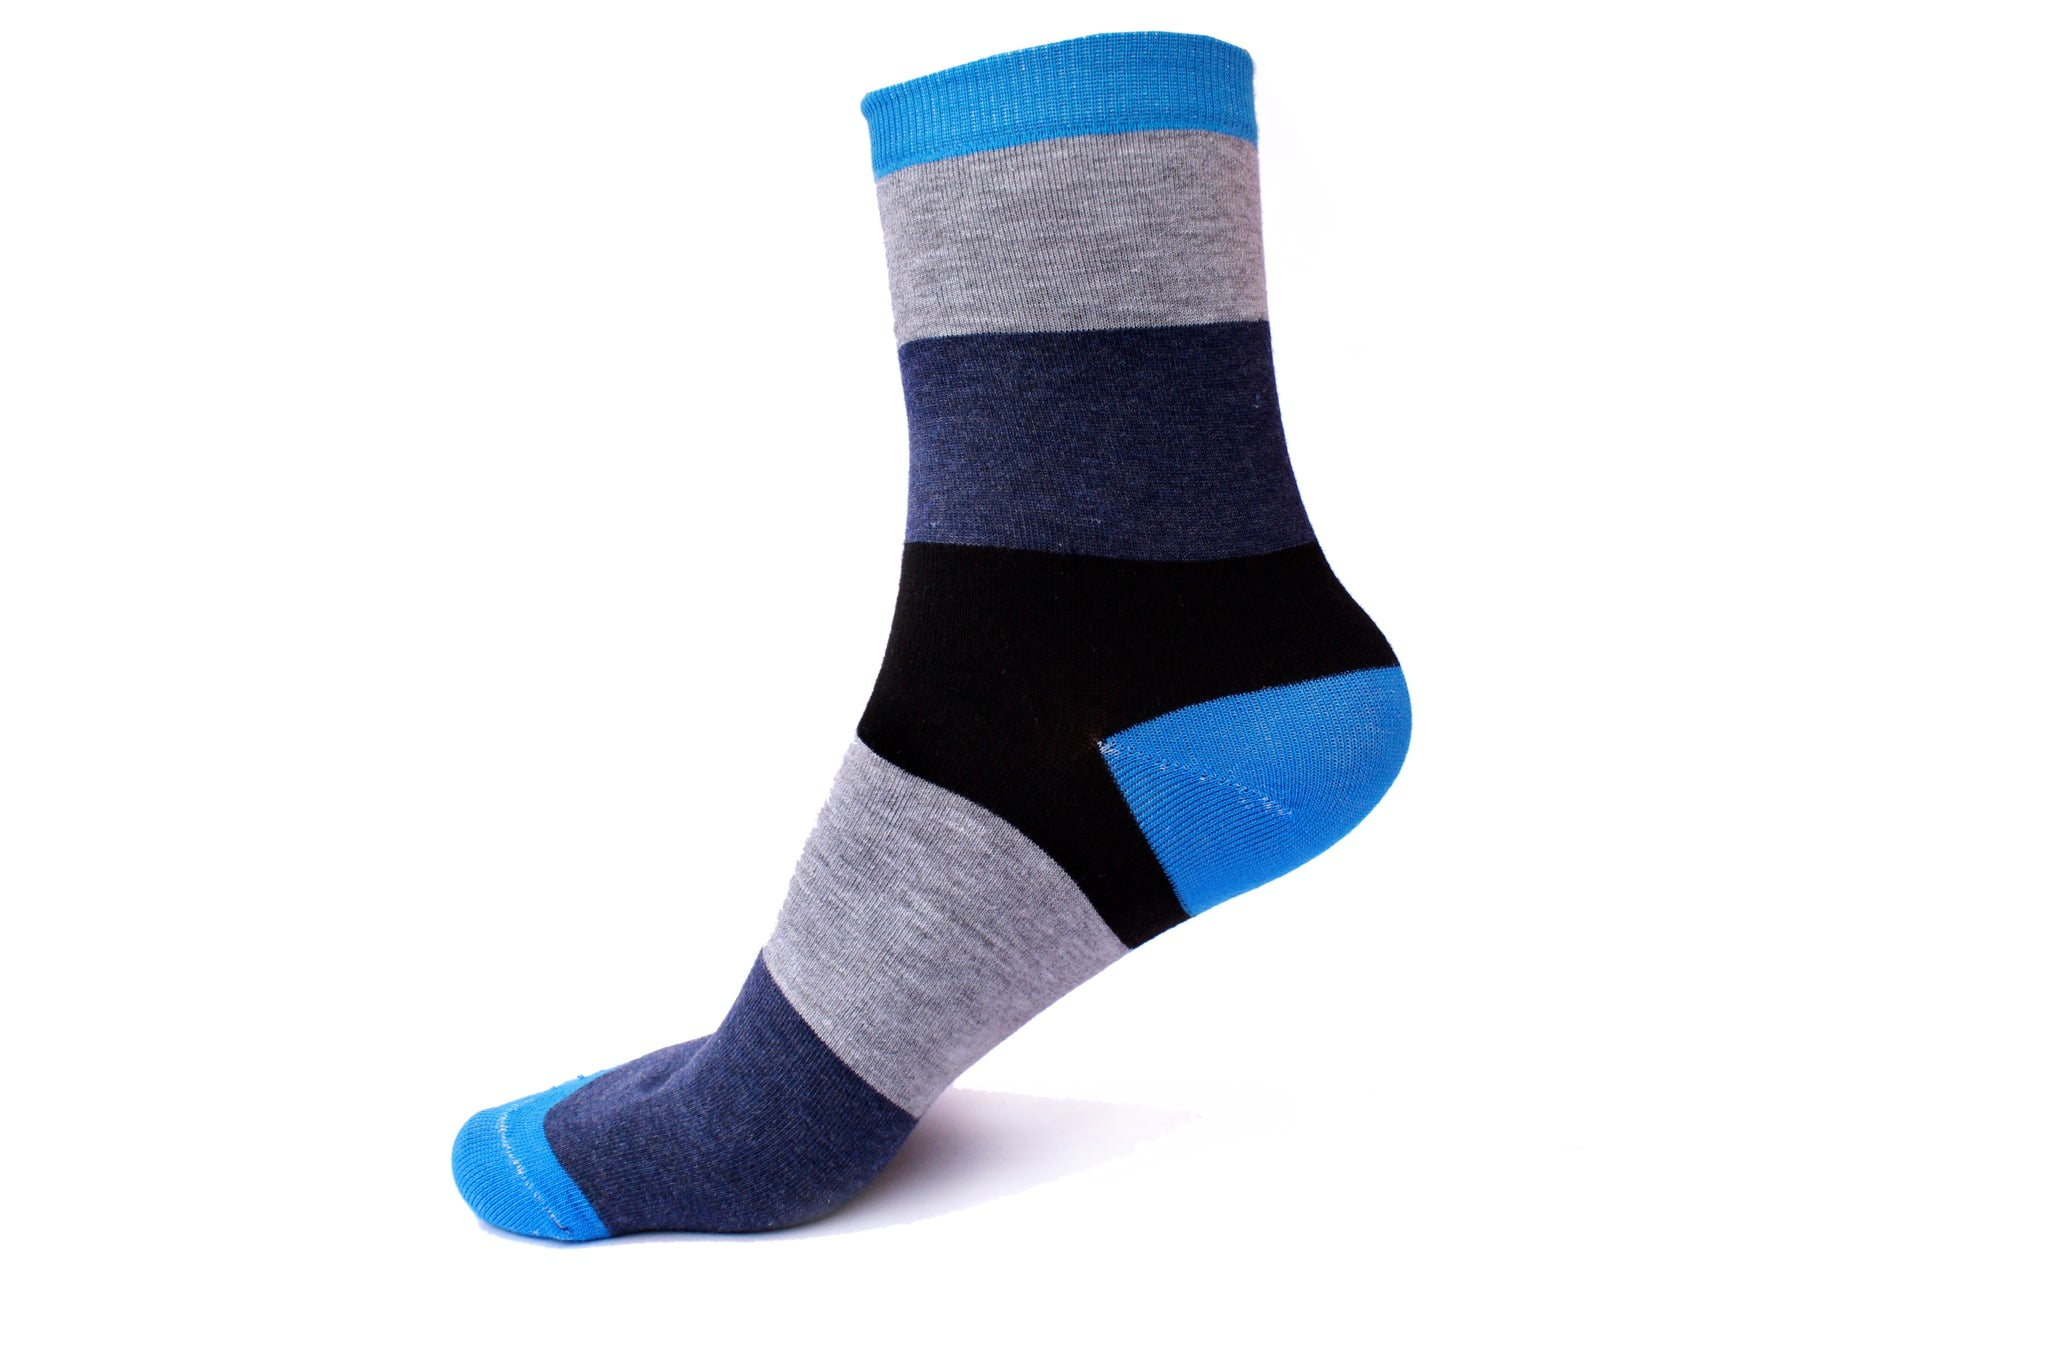 Men's Kingfisher Breathable Cotton Socks